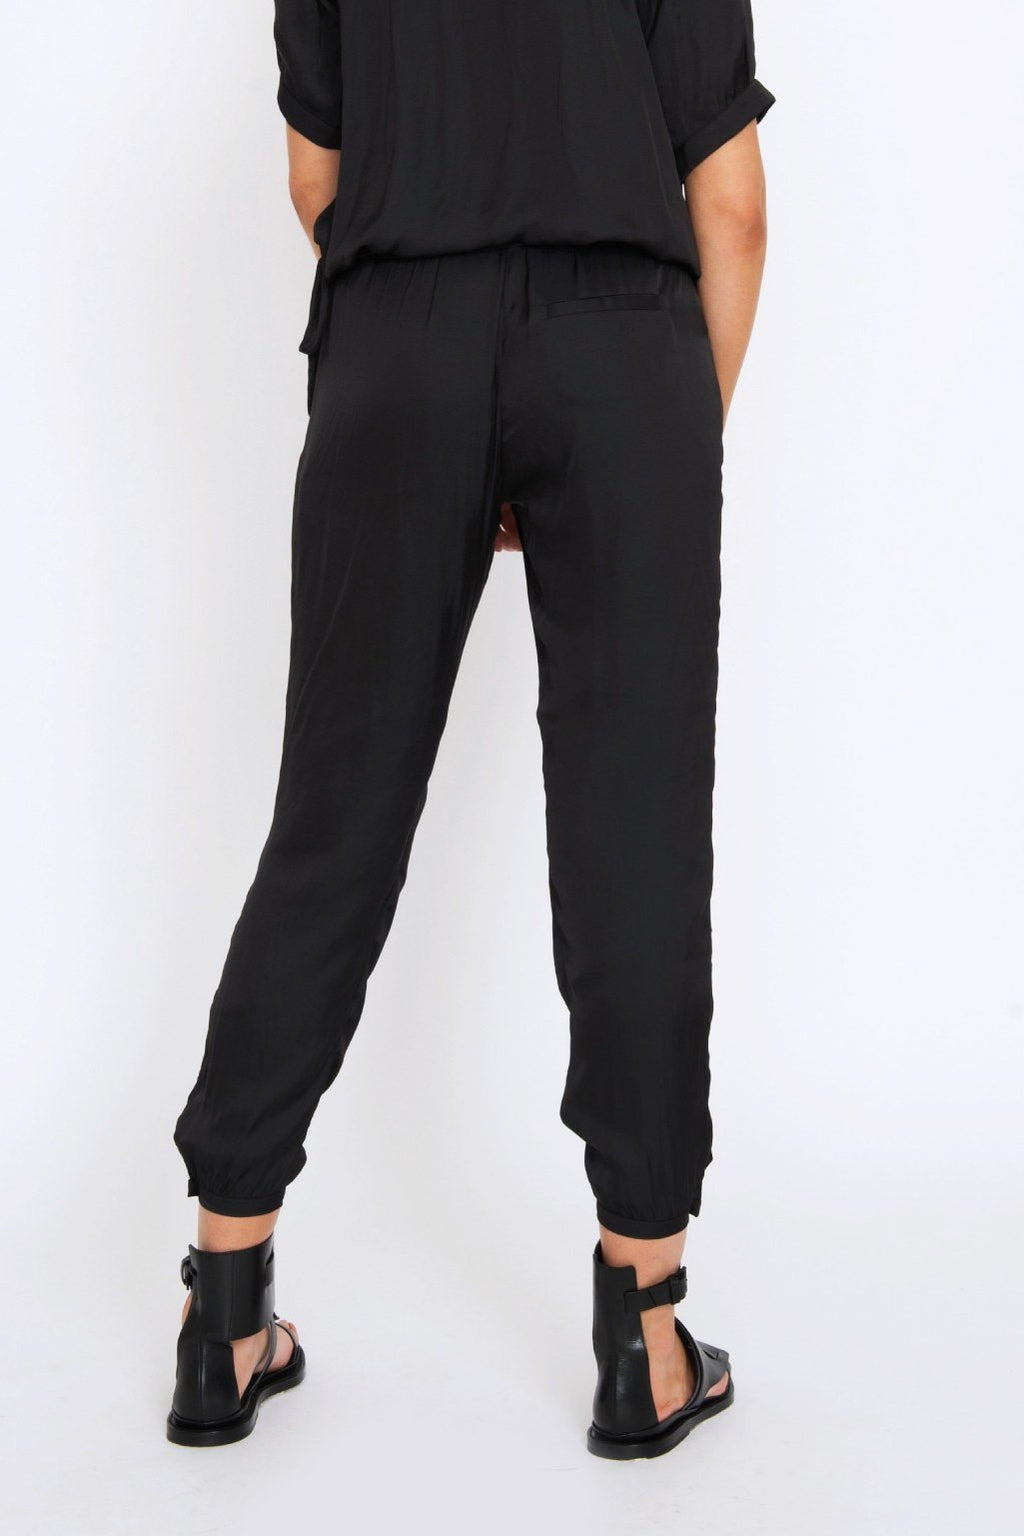 MORRISON - Cameo Pants online at PAYA boutique